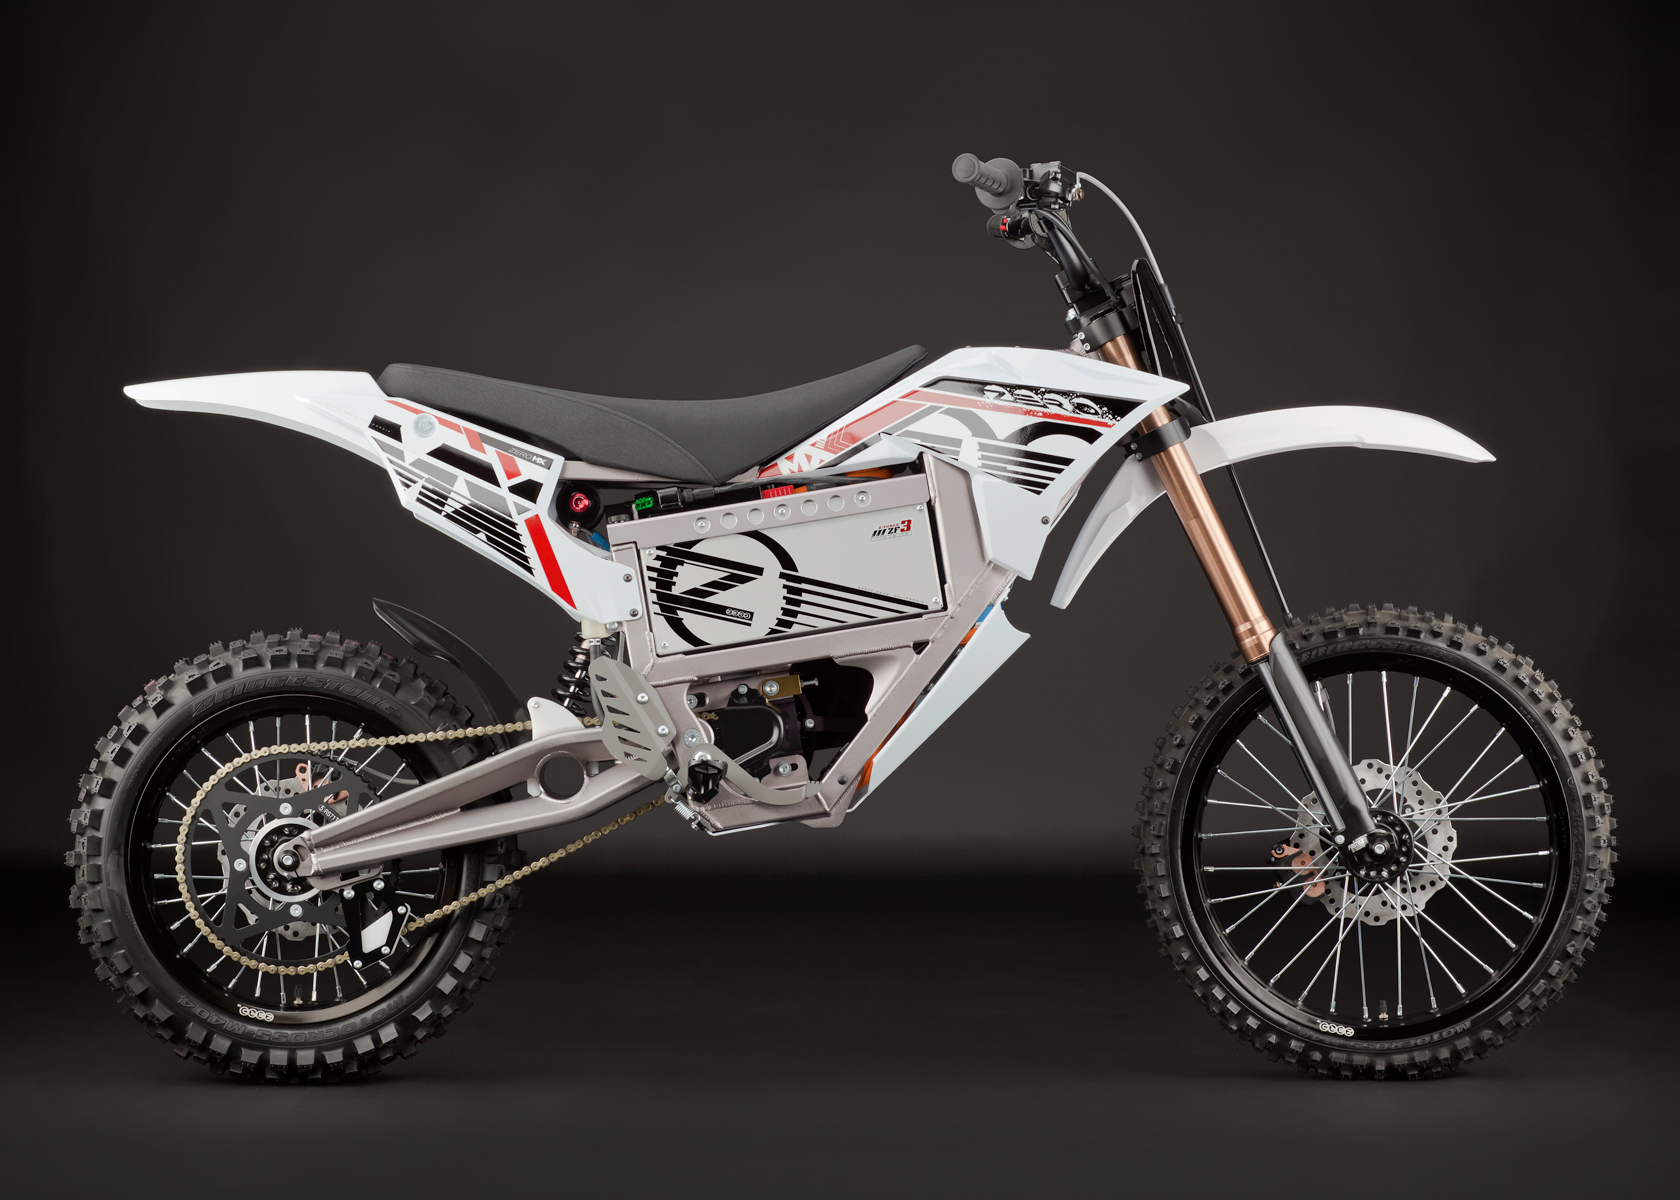 2012 Zero MX Electric Motorcycle: Profile Right